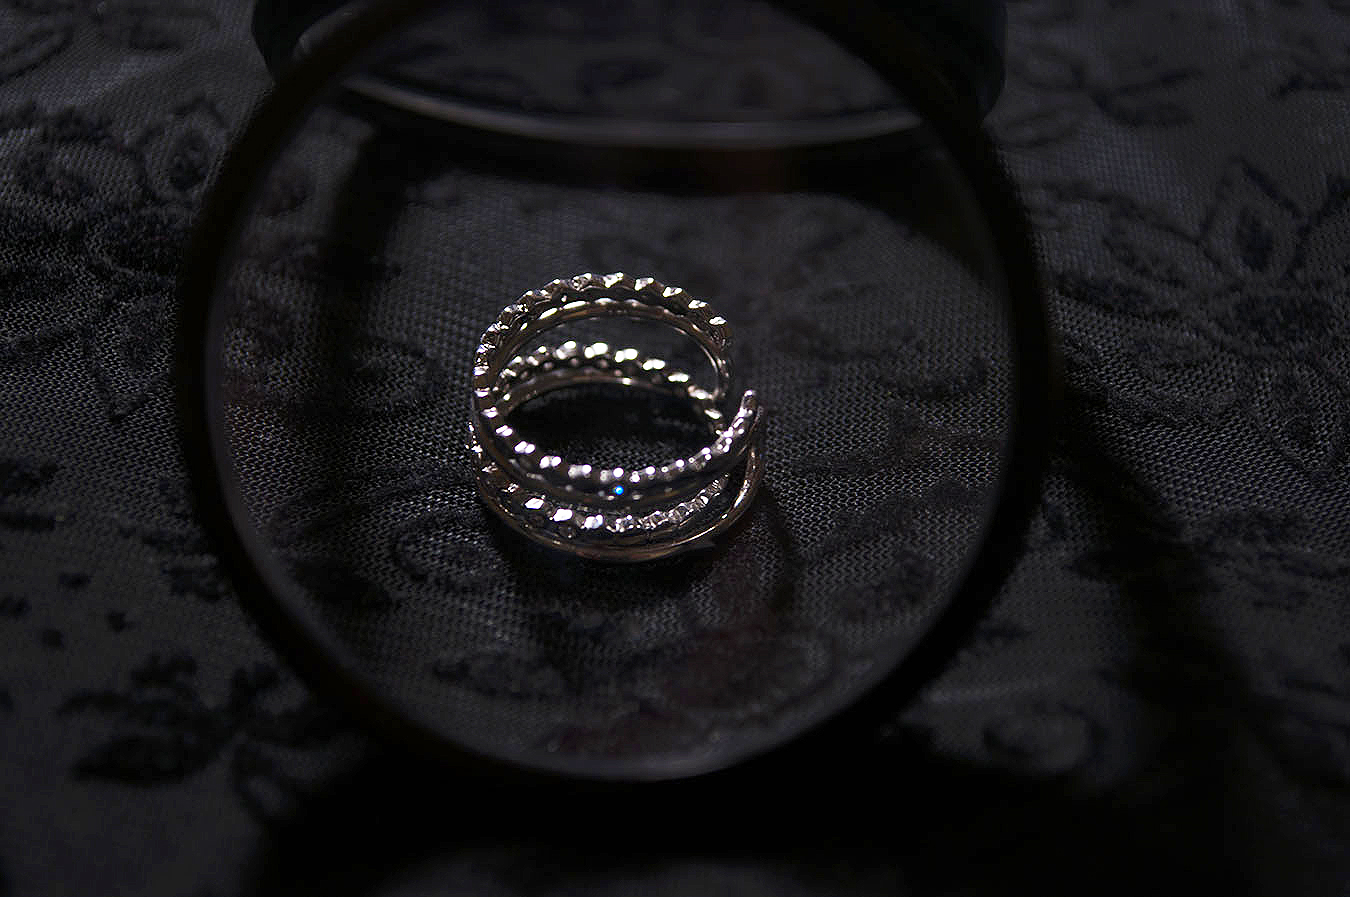 Rebecca_Huang_still_life_photography_dark_velvet_accessories_rings_jewelry_lens_magnifying_reflection_silver_honeycomb_jewels_floral_stacked